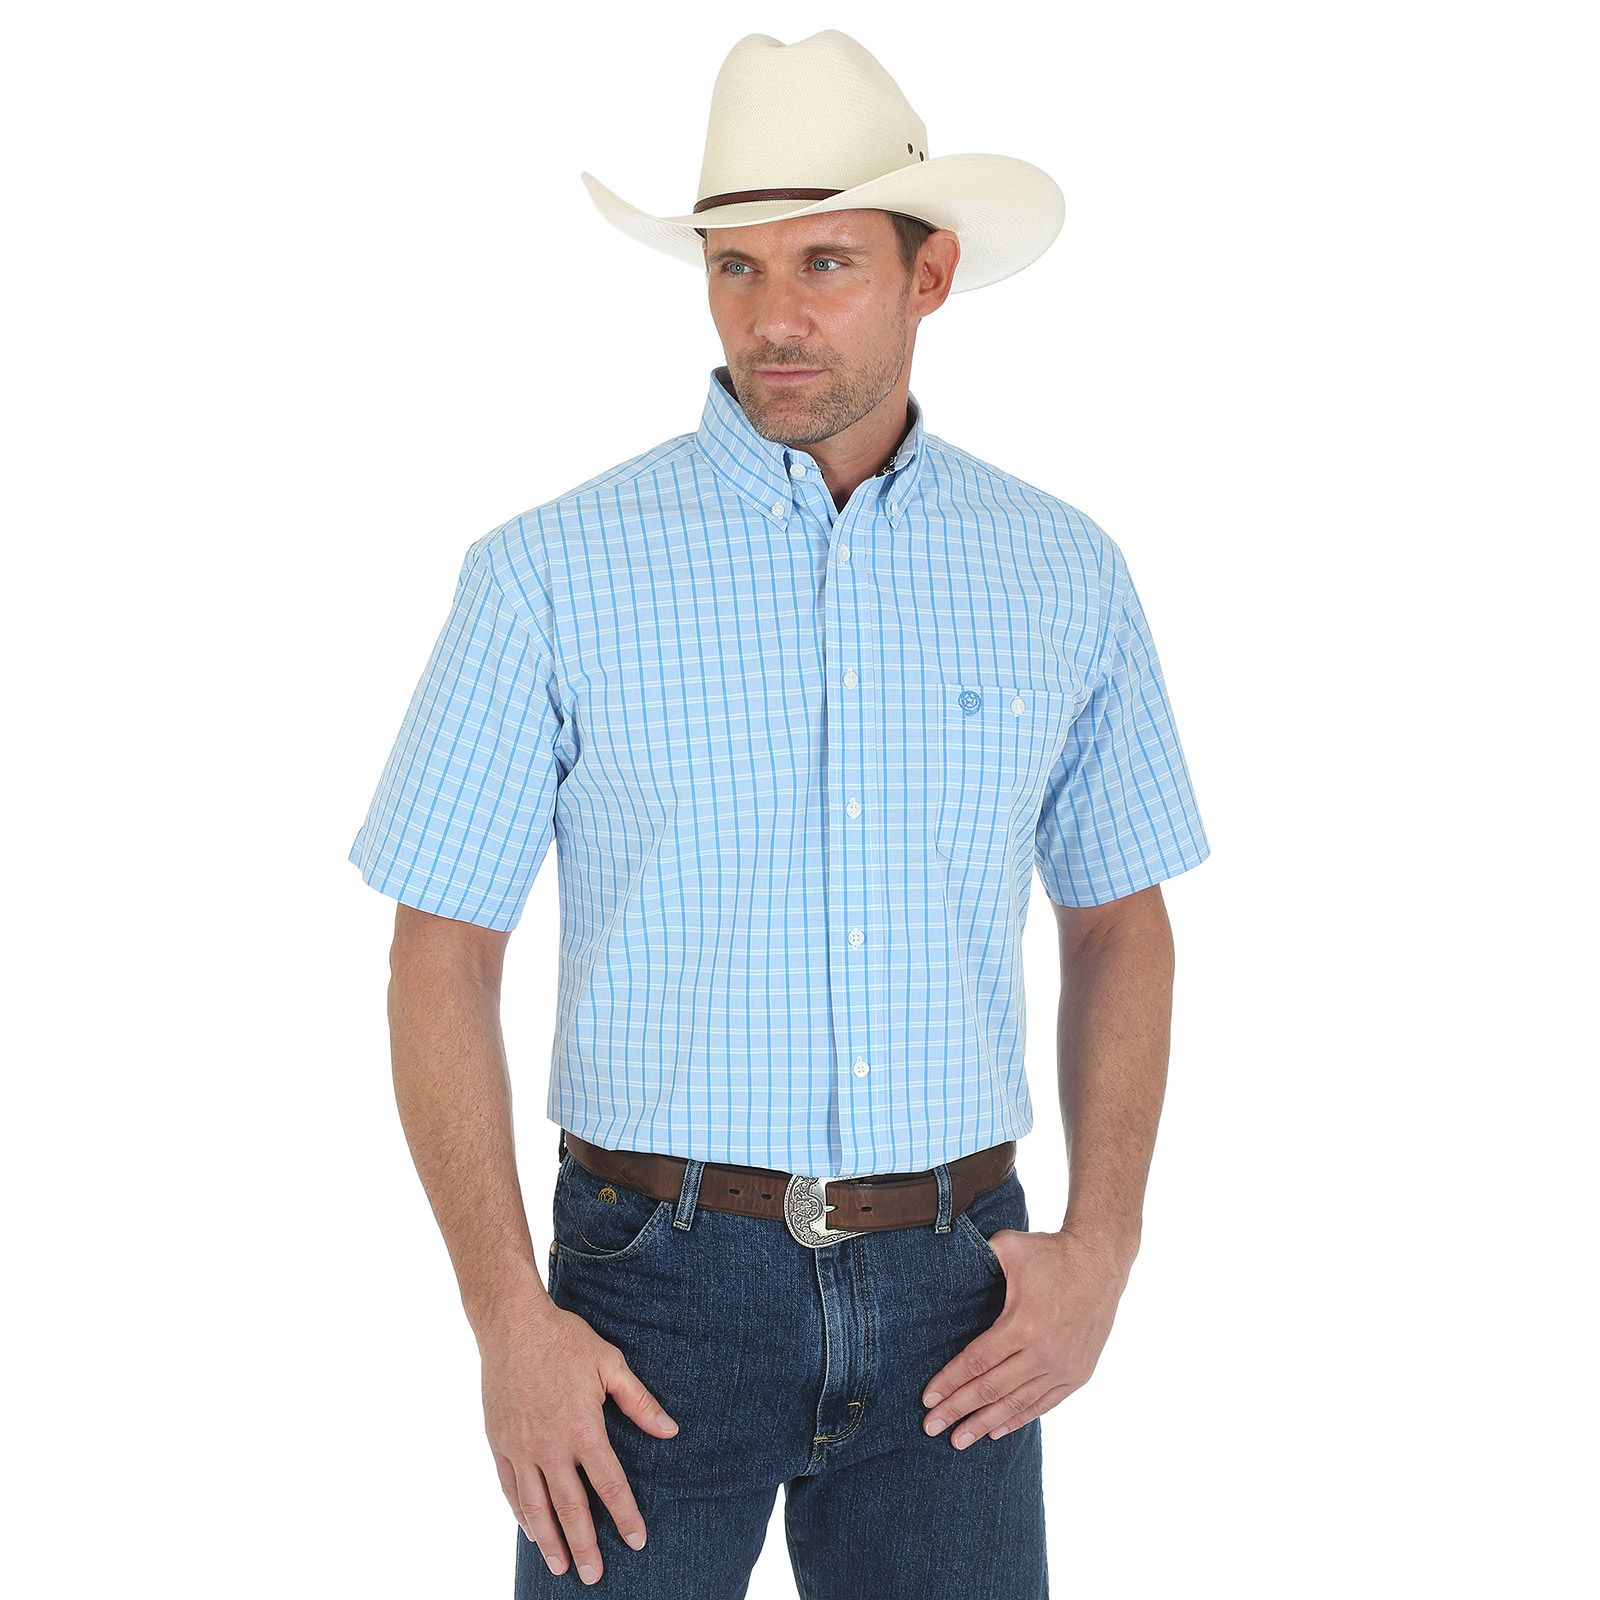 011f4bd082e New Men's Spring Wrangler apparel arriving at Billy's Western Wear ...